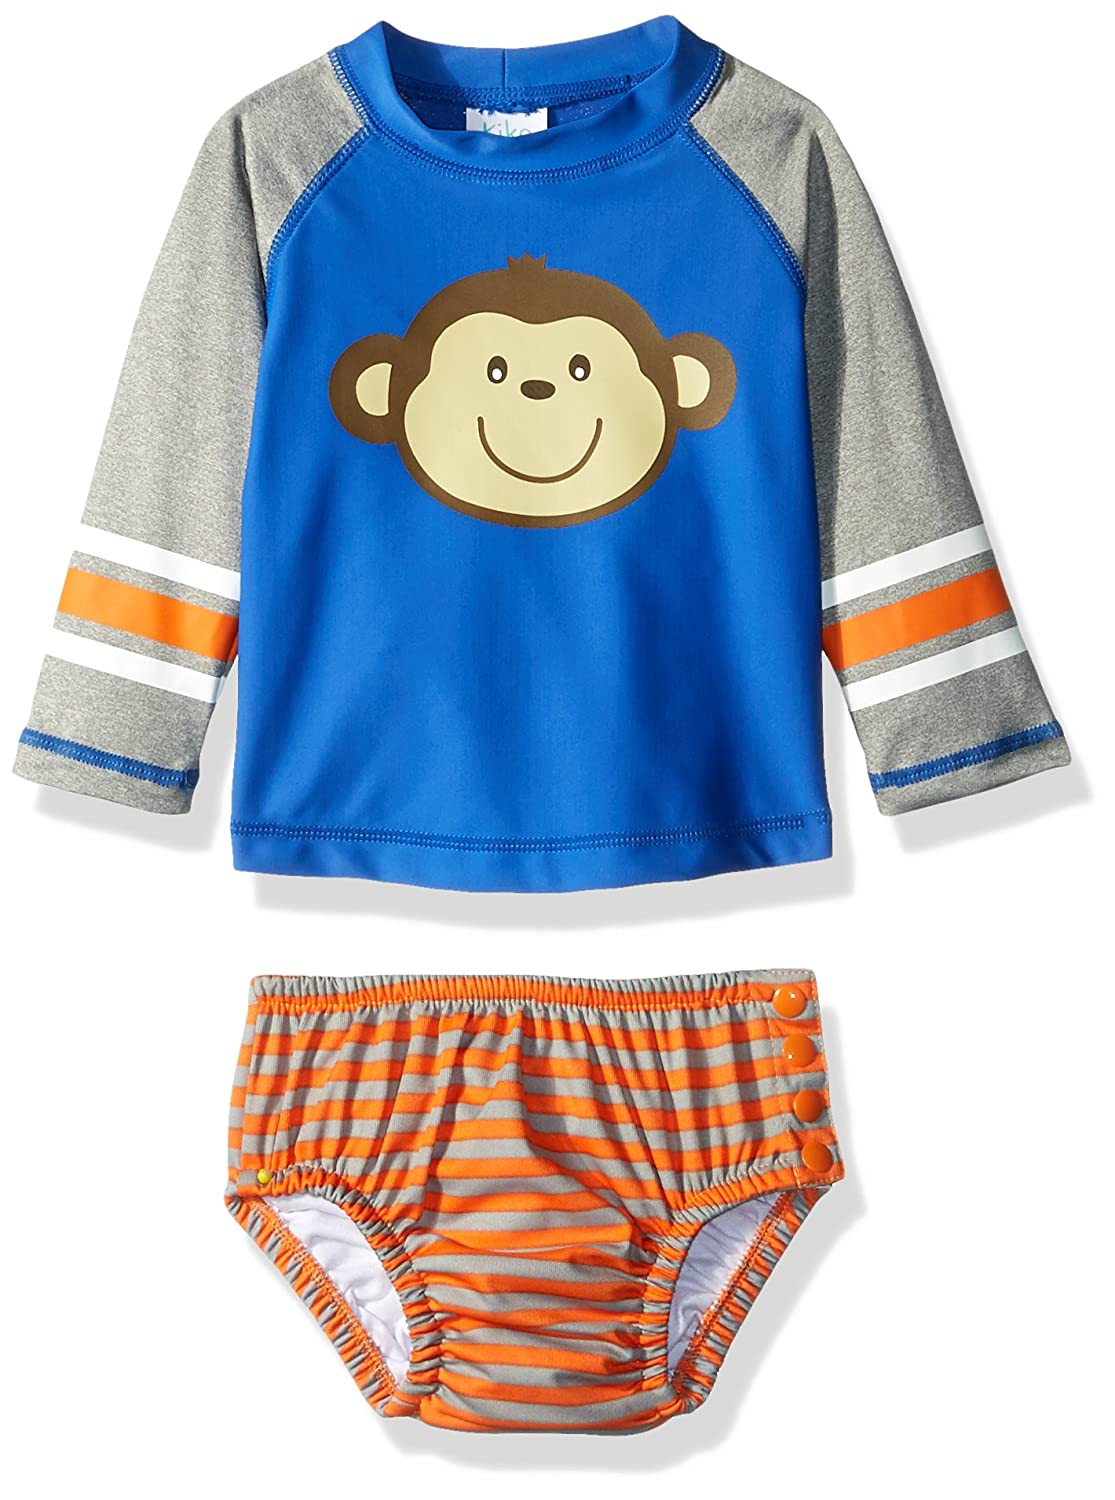 Kiko & Max Baby Boys Rashguard and Diaper Cover Swim Set